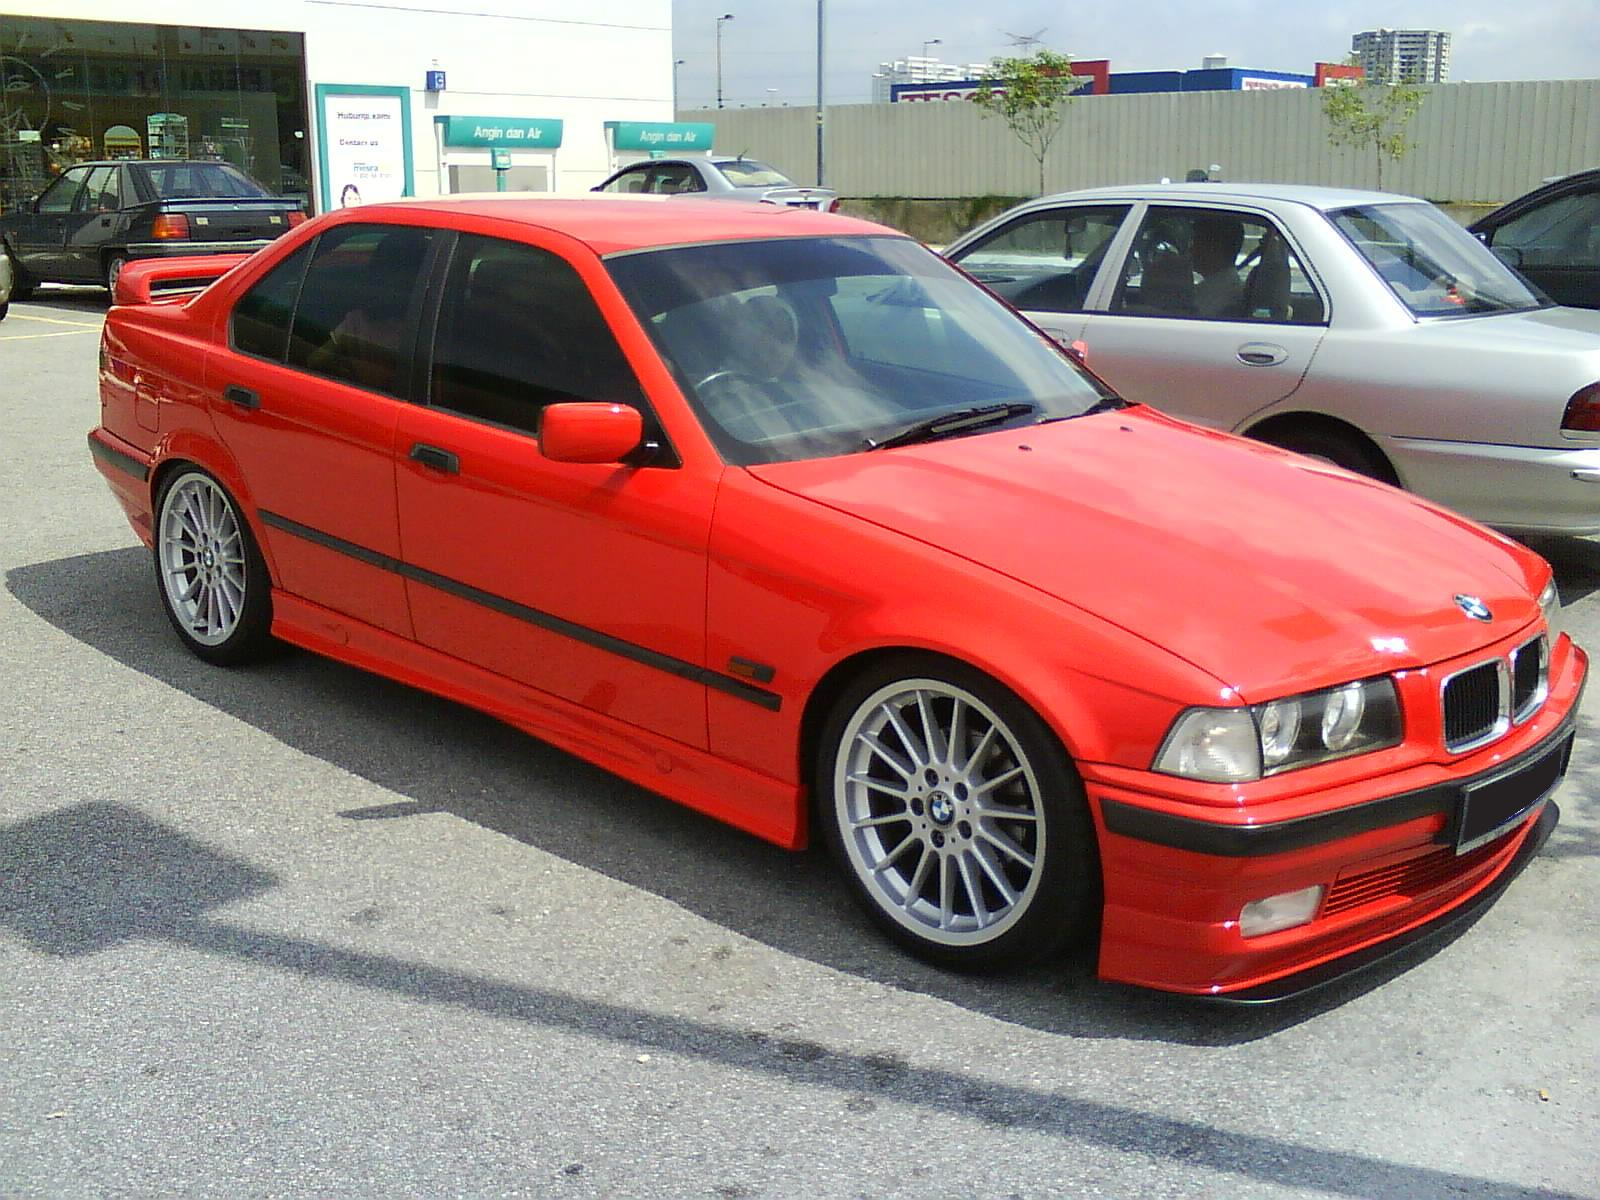 Bmw E36 Alpina Review Amazing Pictures And Images Look At The Car